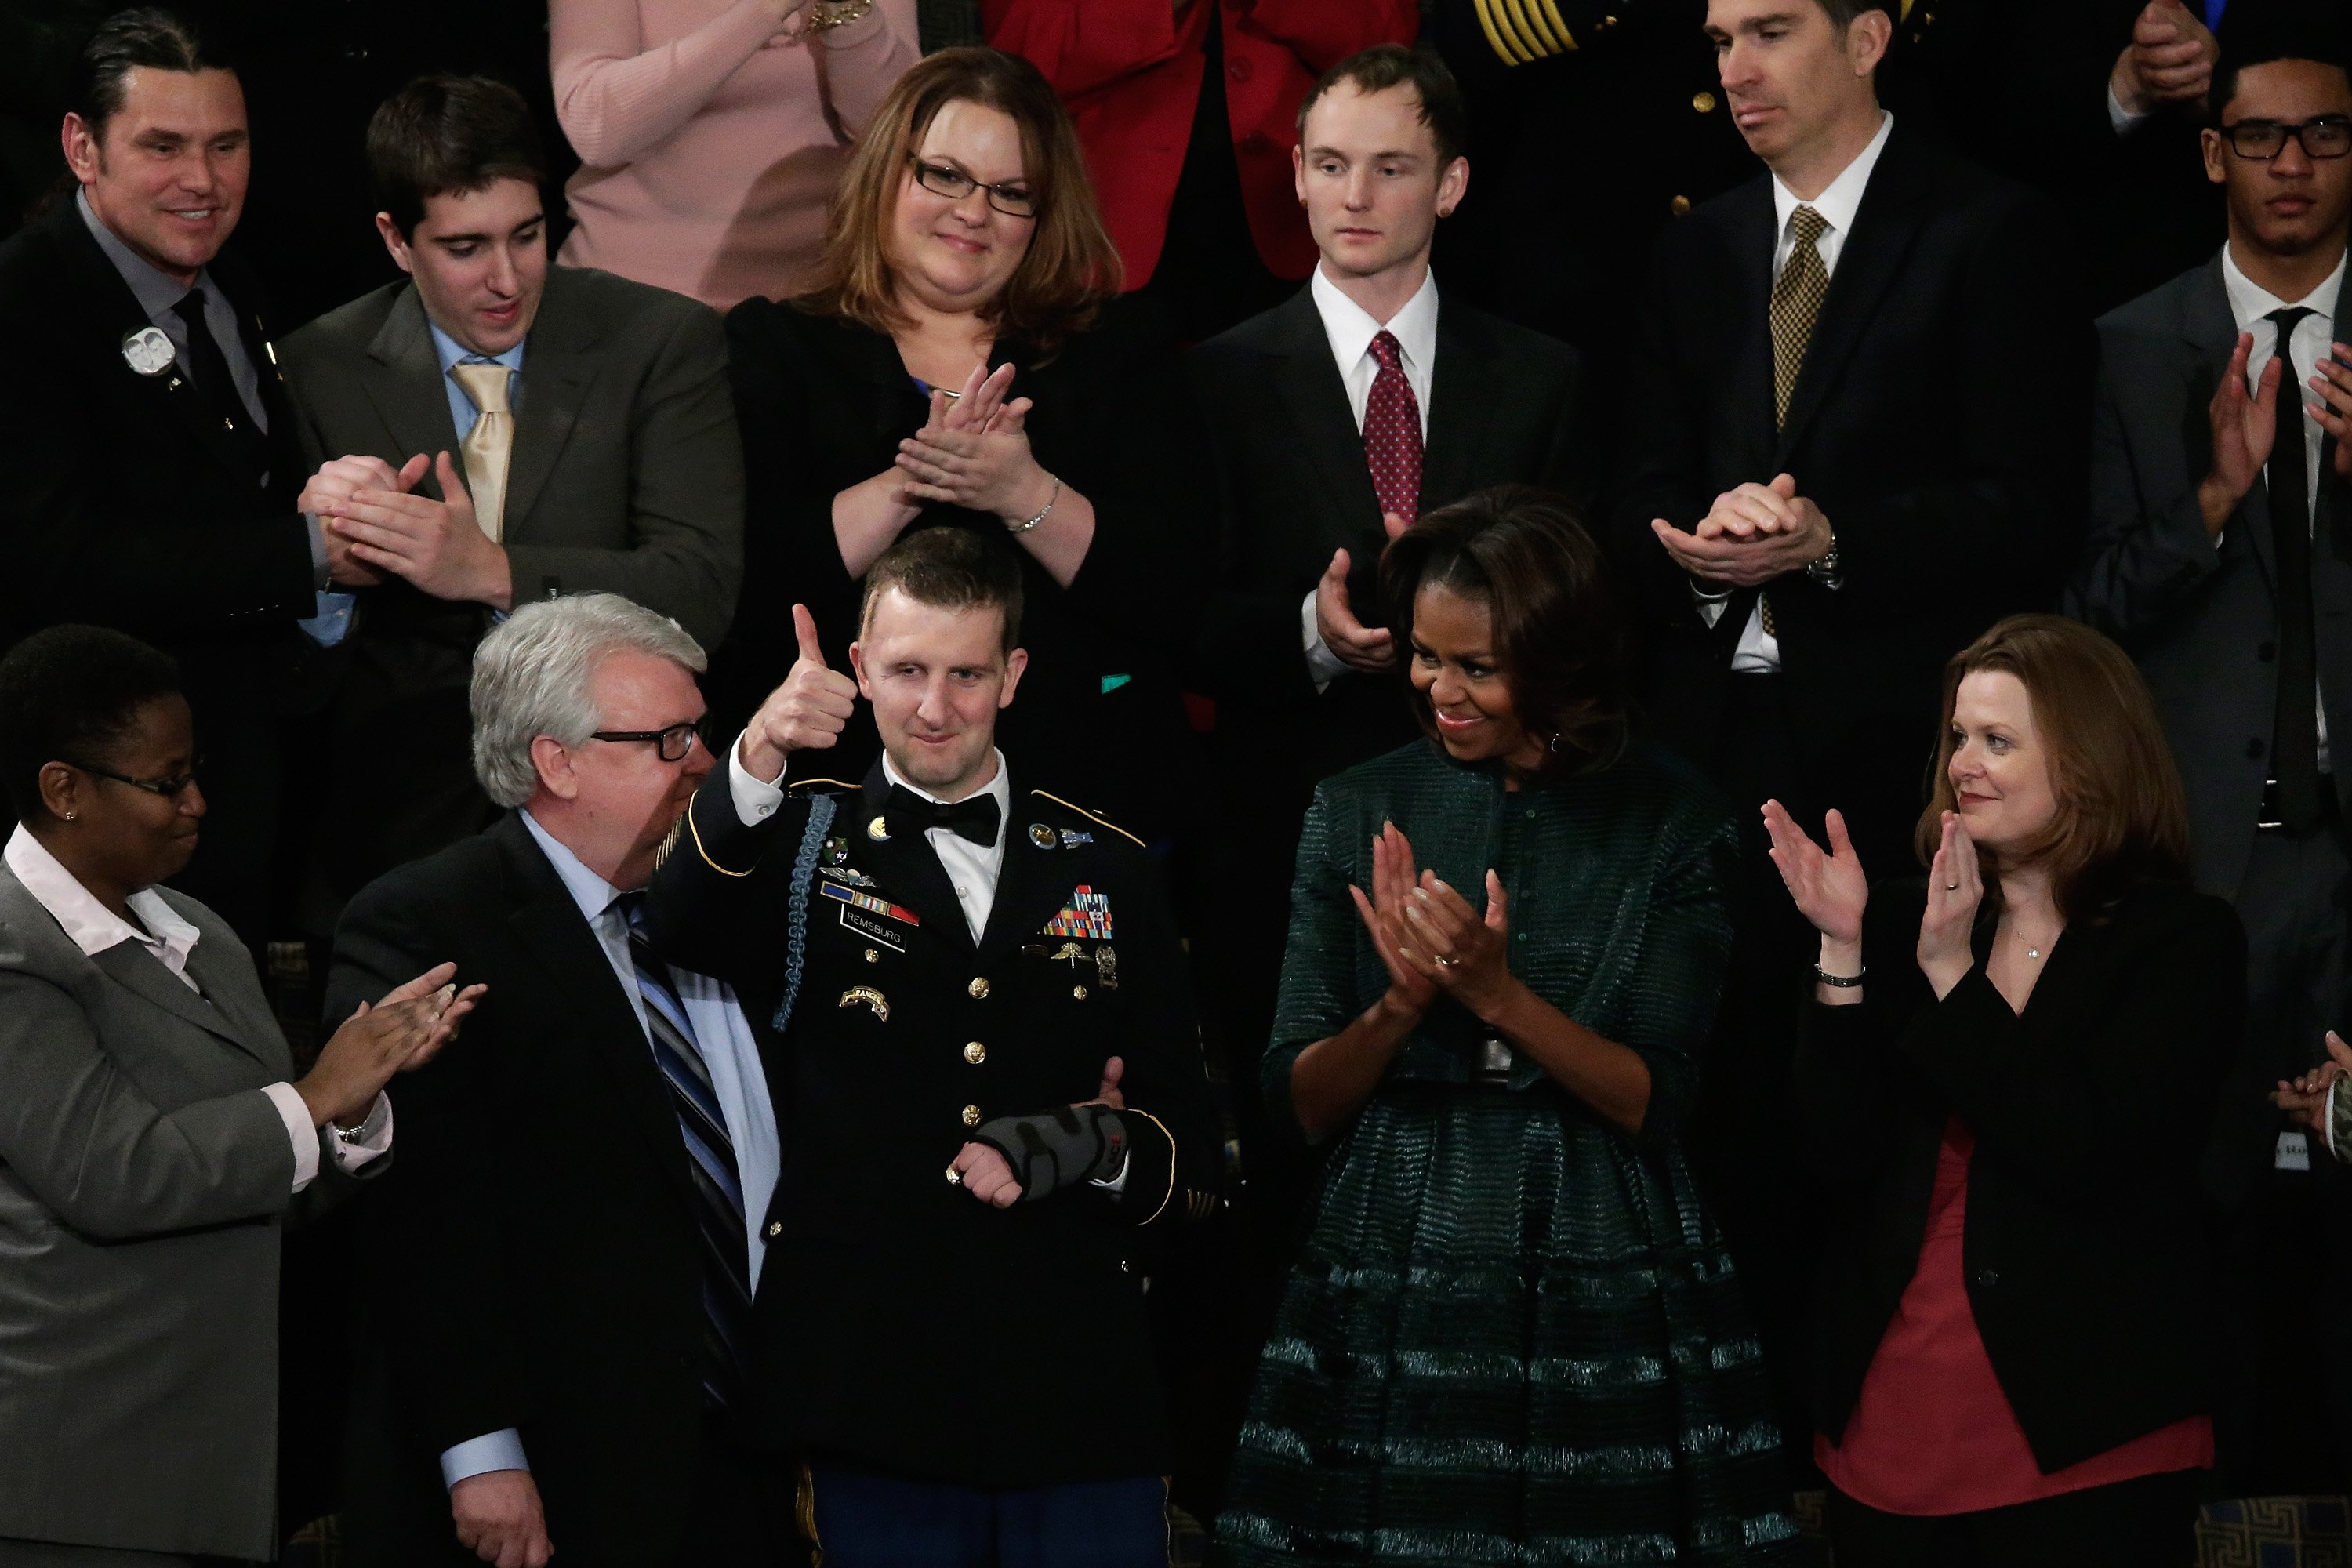 U.S. Army Ranger Sgt. First Class Cory Remsburg gives a thumbs up as he receives a standing ovation during the State of the Union.